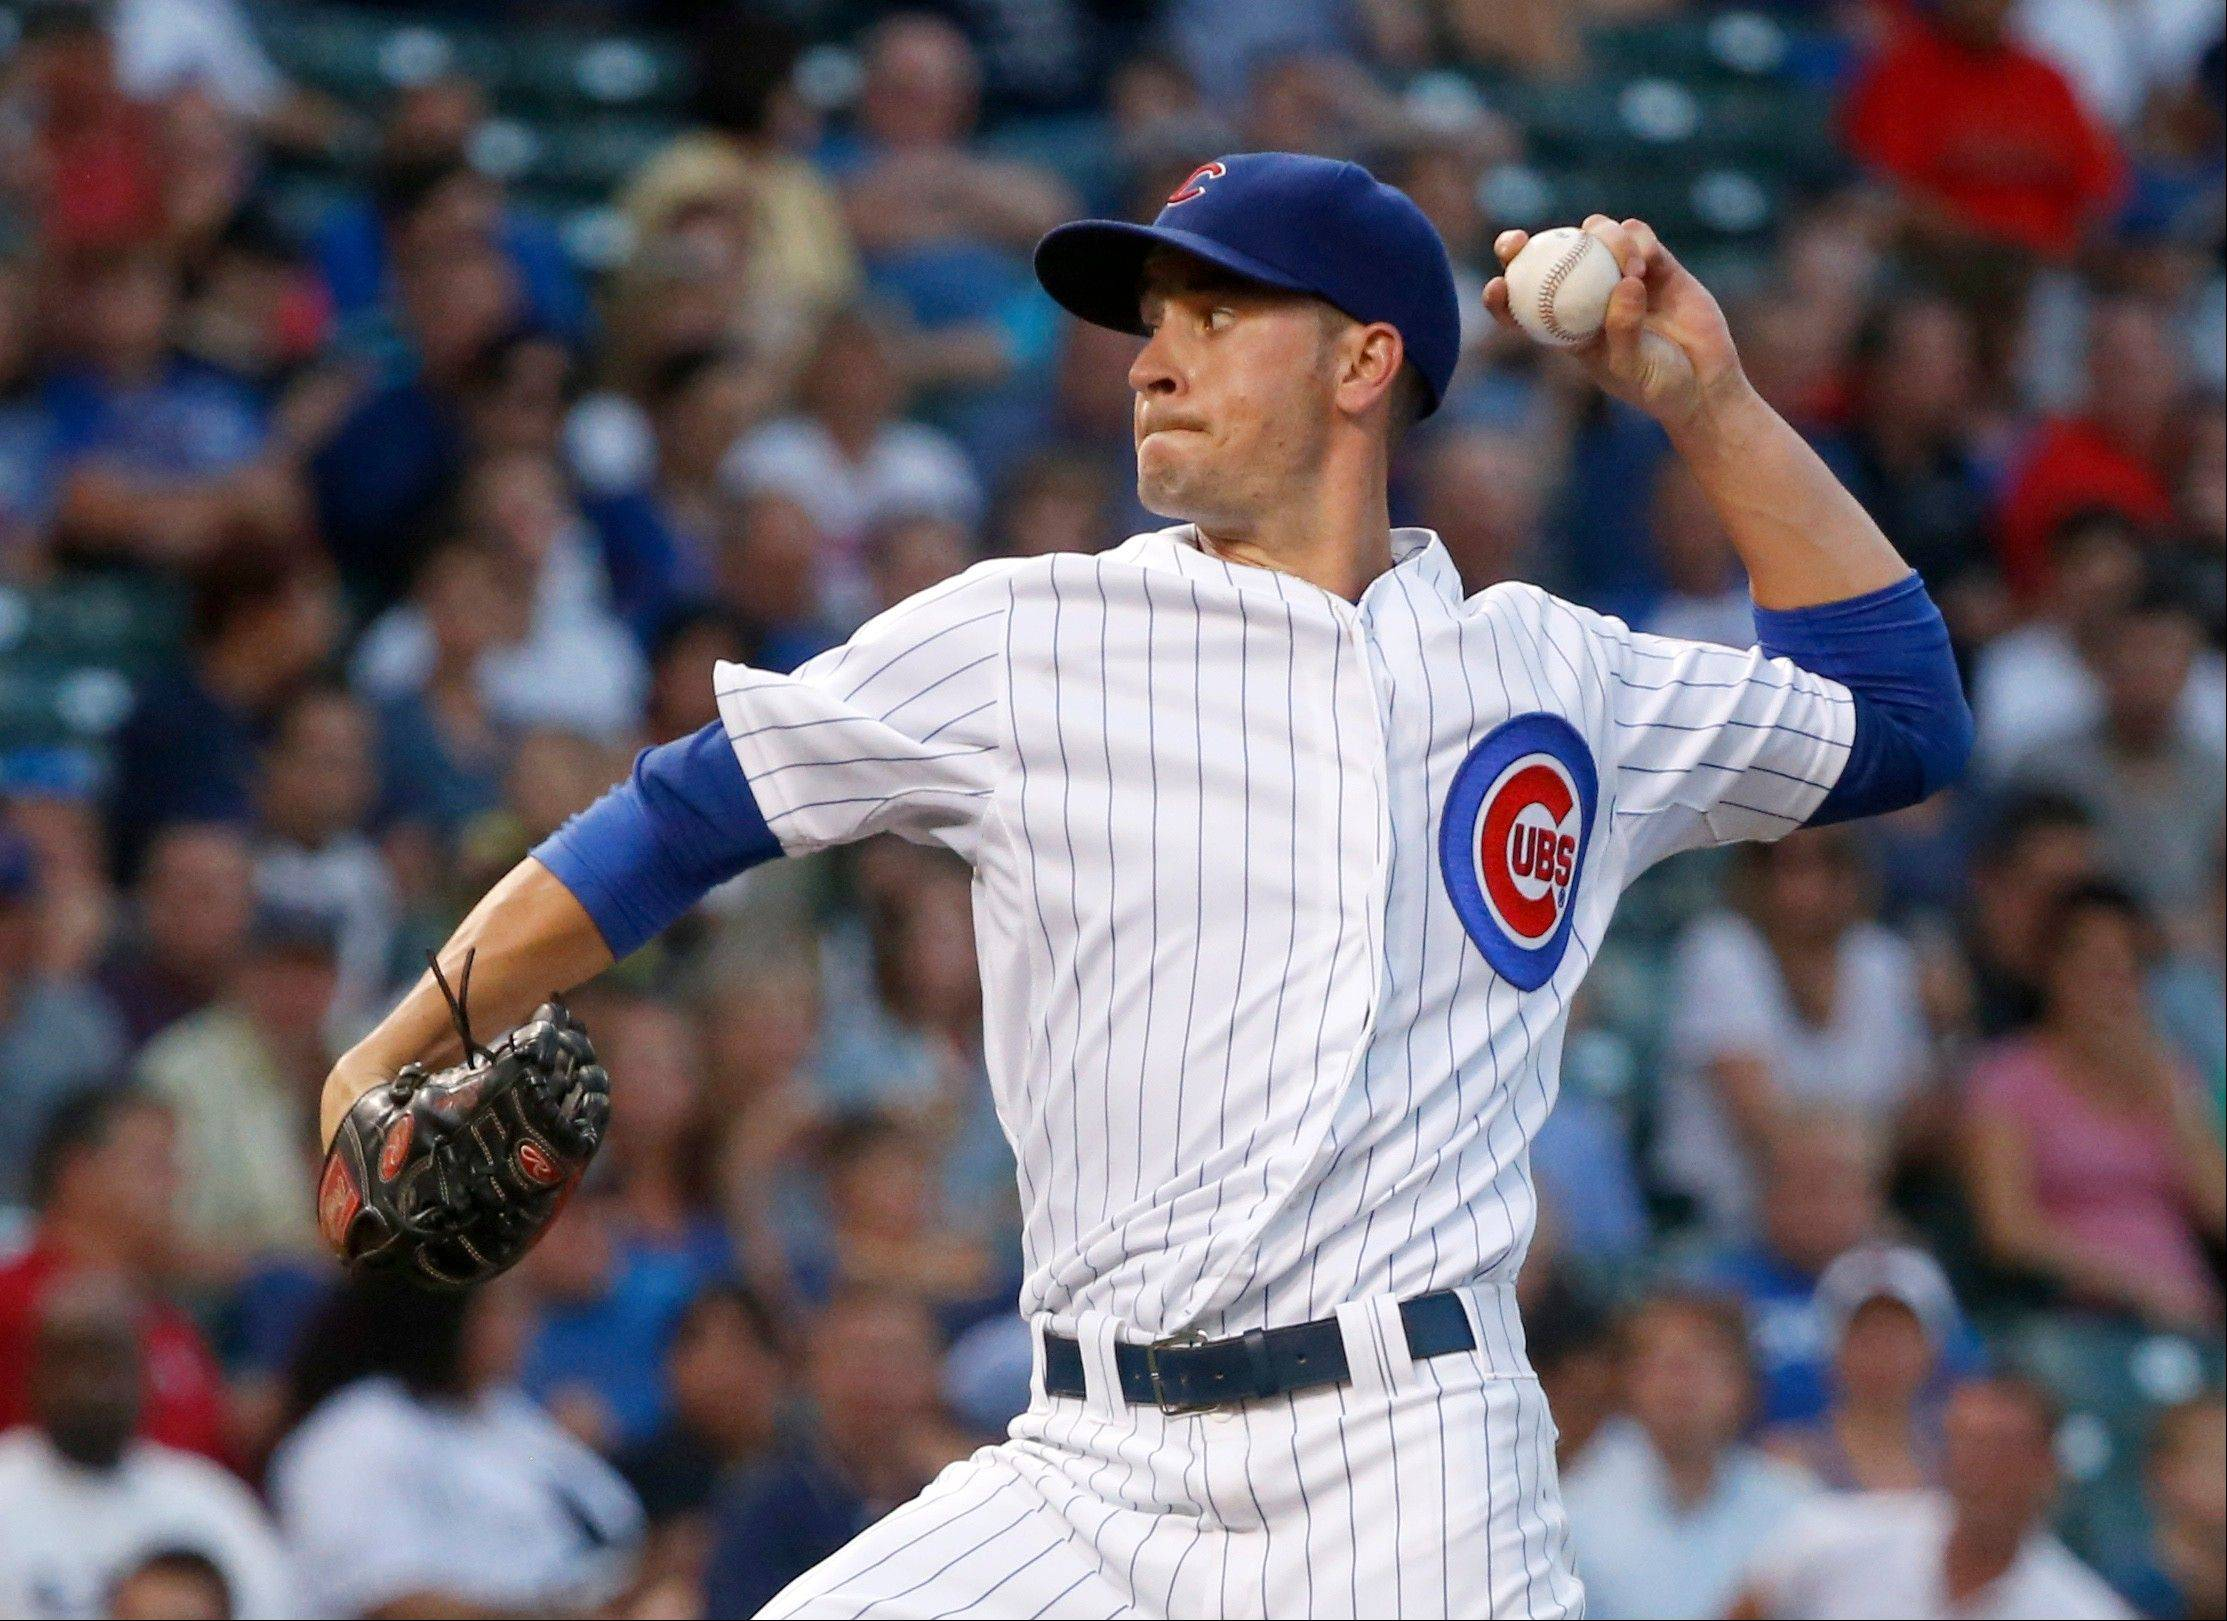 Cubs starting pitcher Chris Rusin gave up 2 runs on 10 hits and saw his record drop to 2-3 with Tuesday night�s loss to the Nationals.